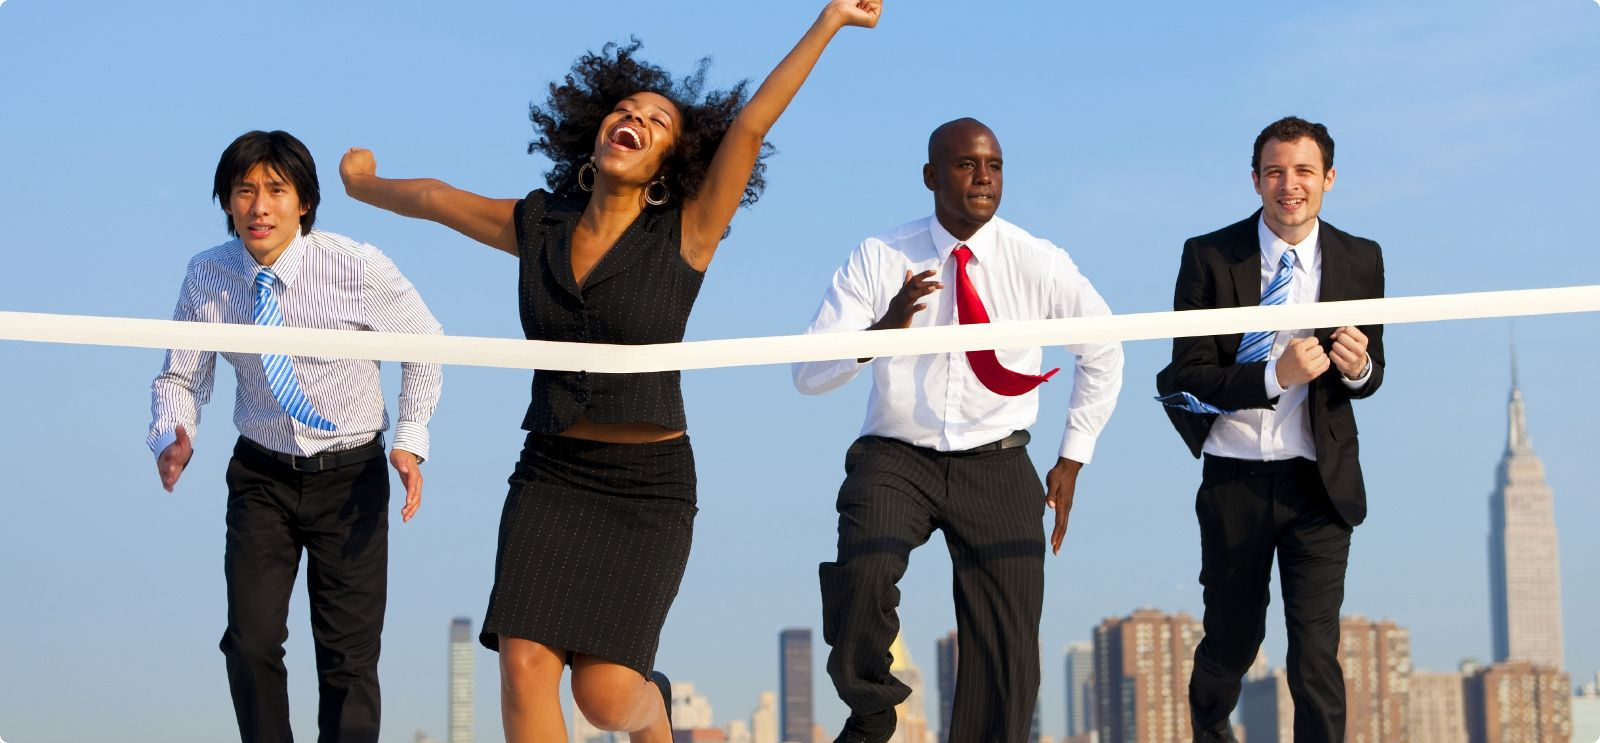 Effective incentive strategies for every organisational goal